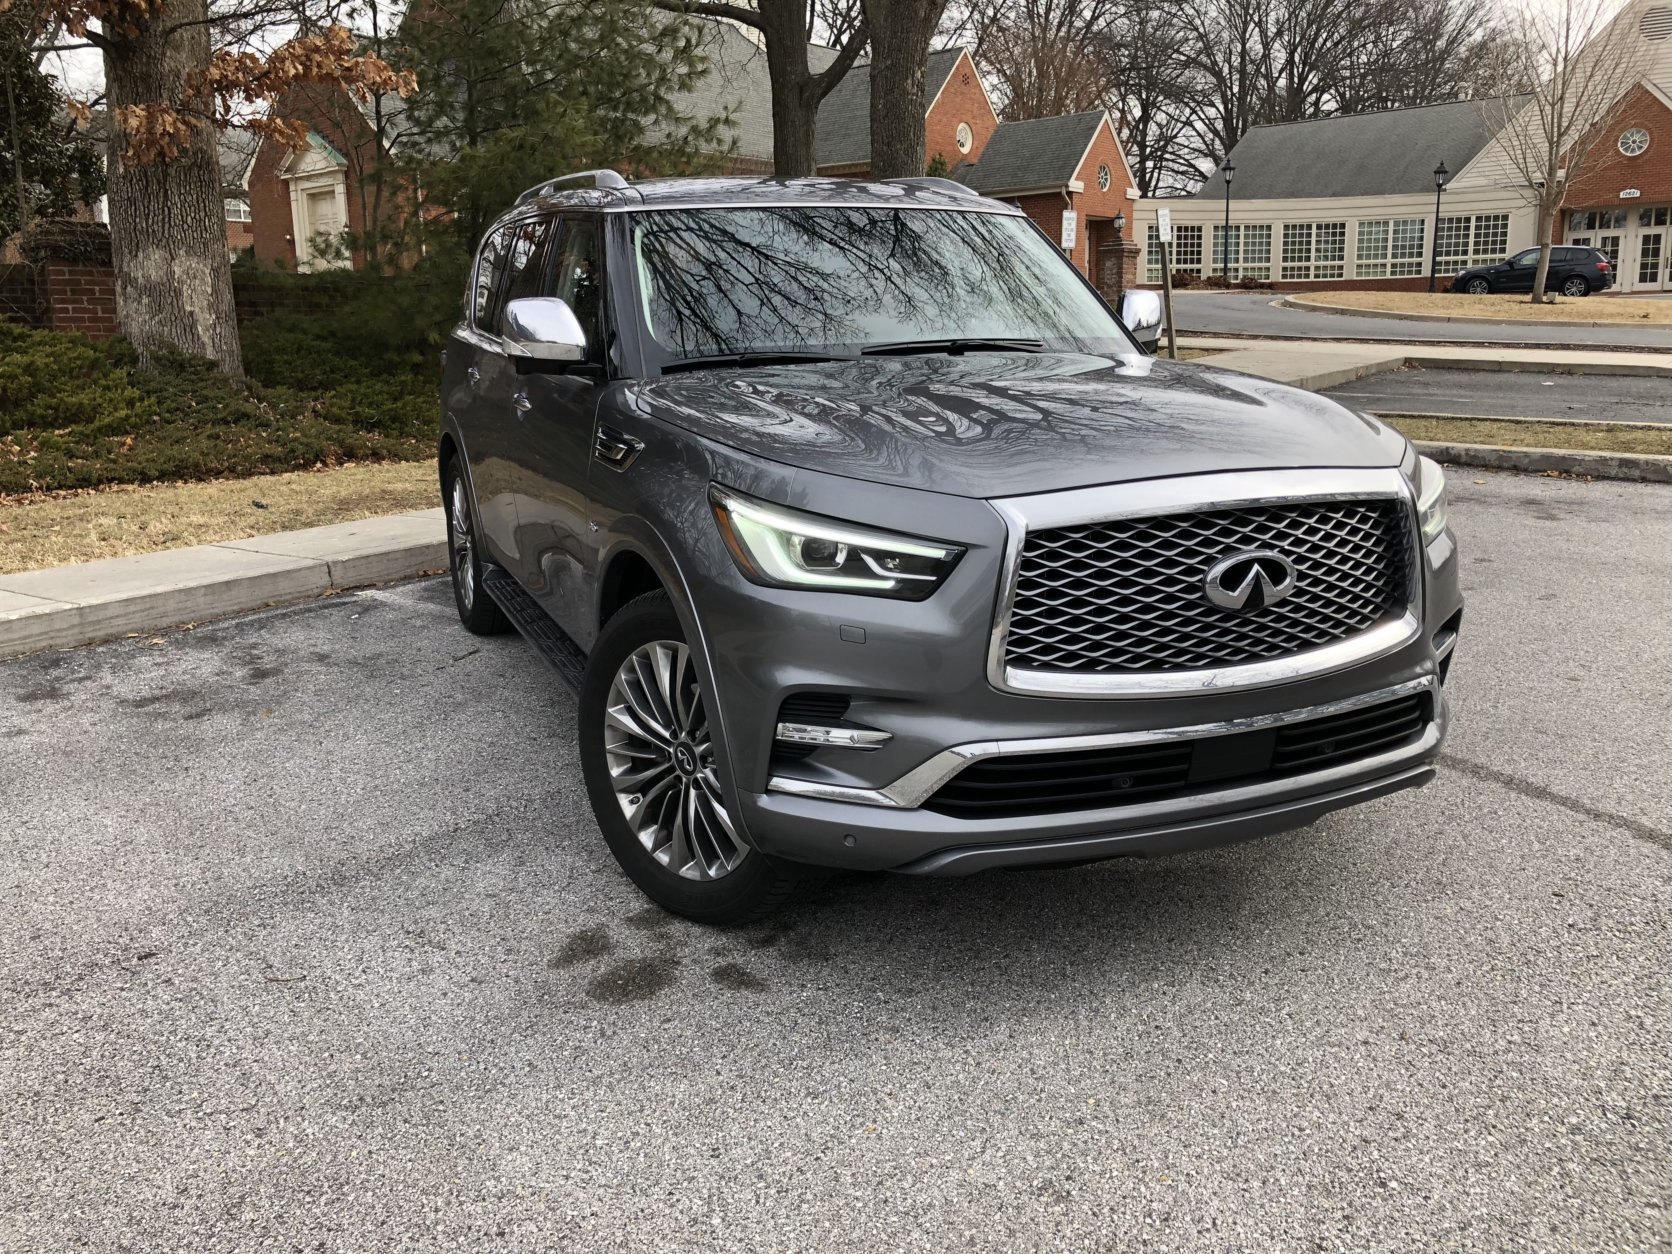 <h3>Infiniti QX80</h3> <p>Space and luxury prove to be a tempting offering. This classy sedan is the victim of car thieves 4.2 times higher than average.</p>